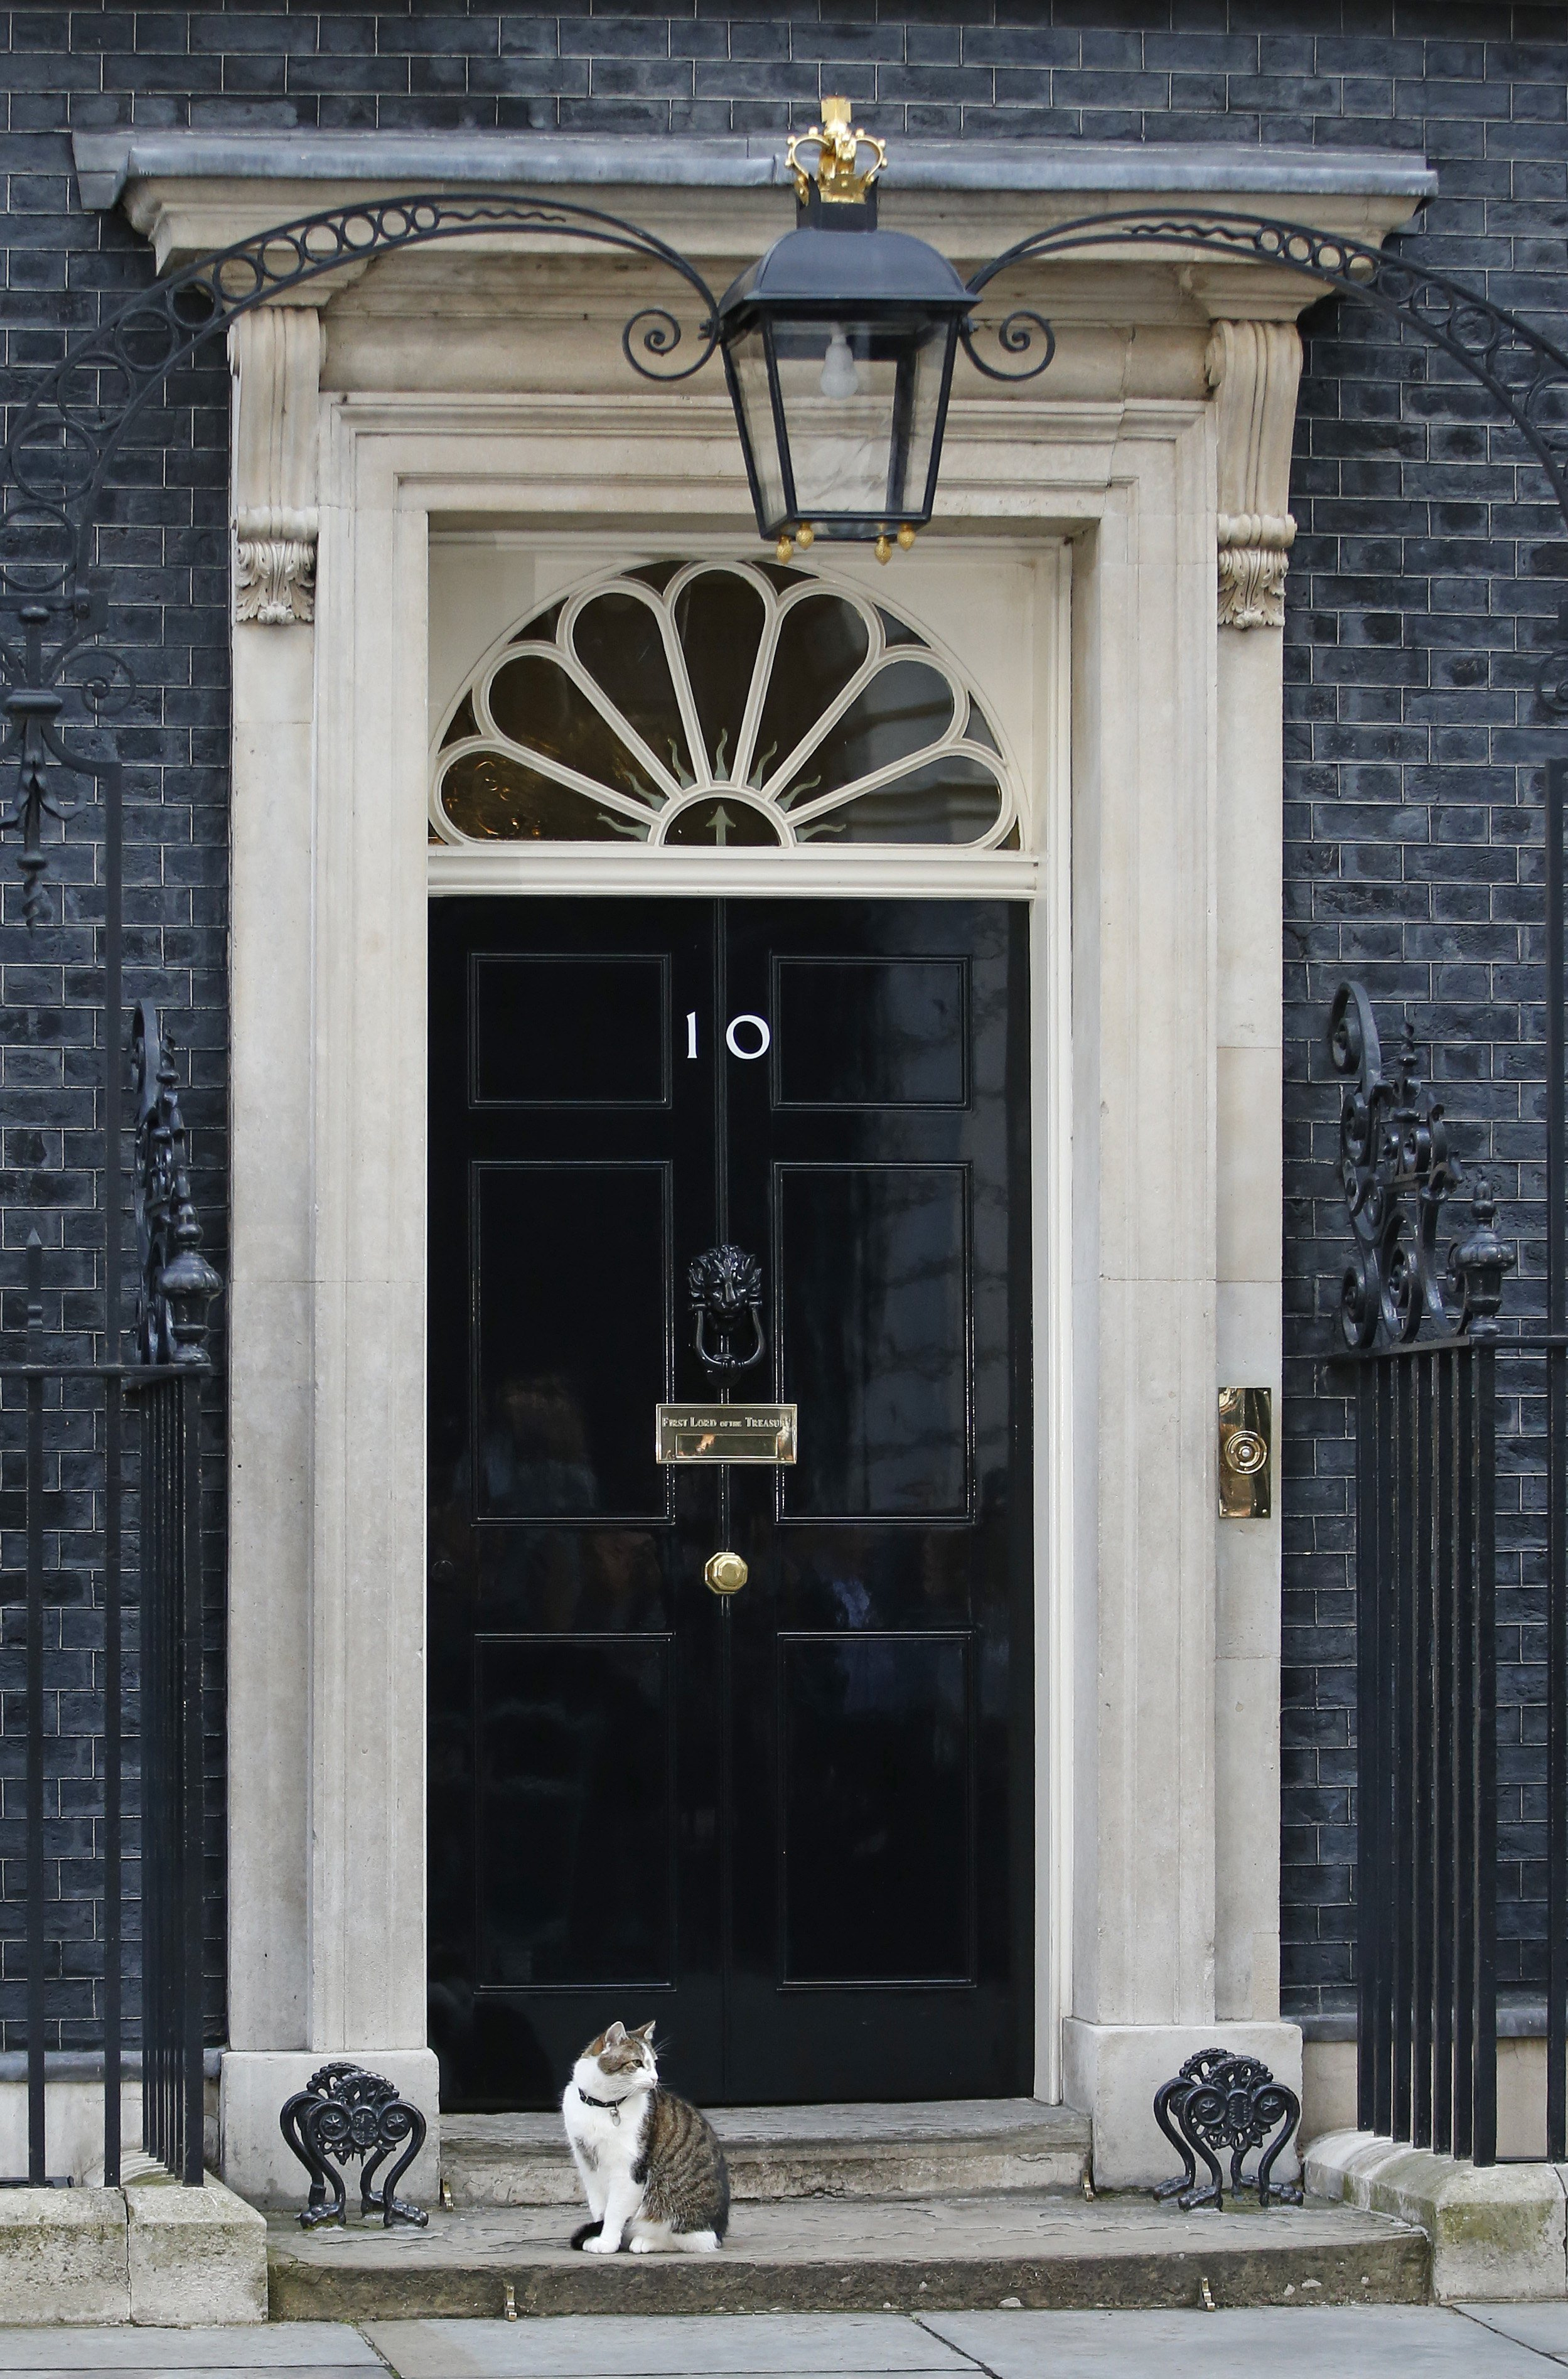 British PM Moves out, but Cat Gets to Stay